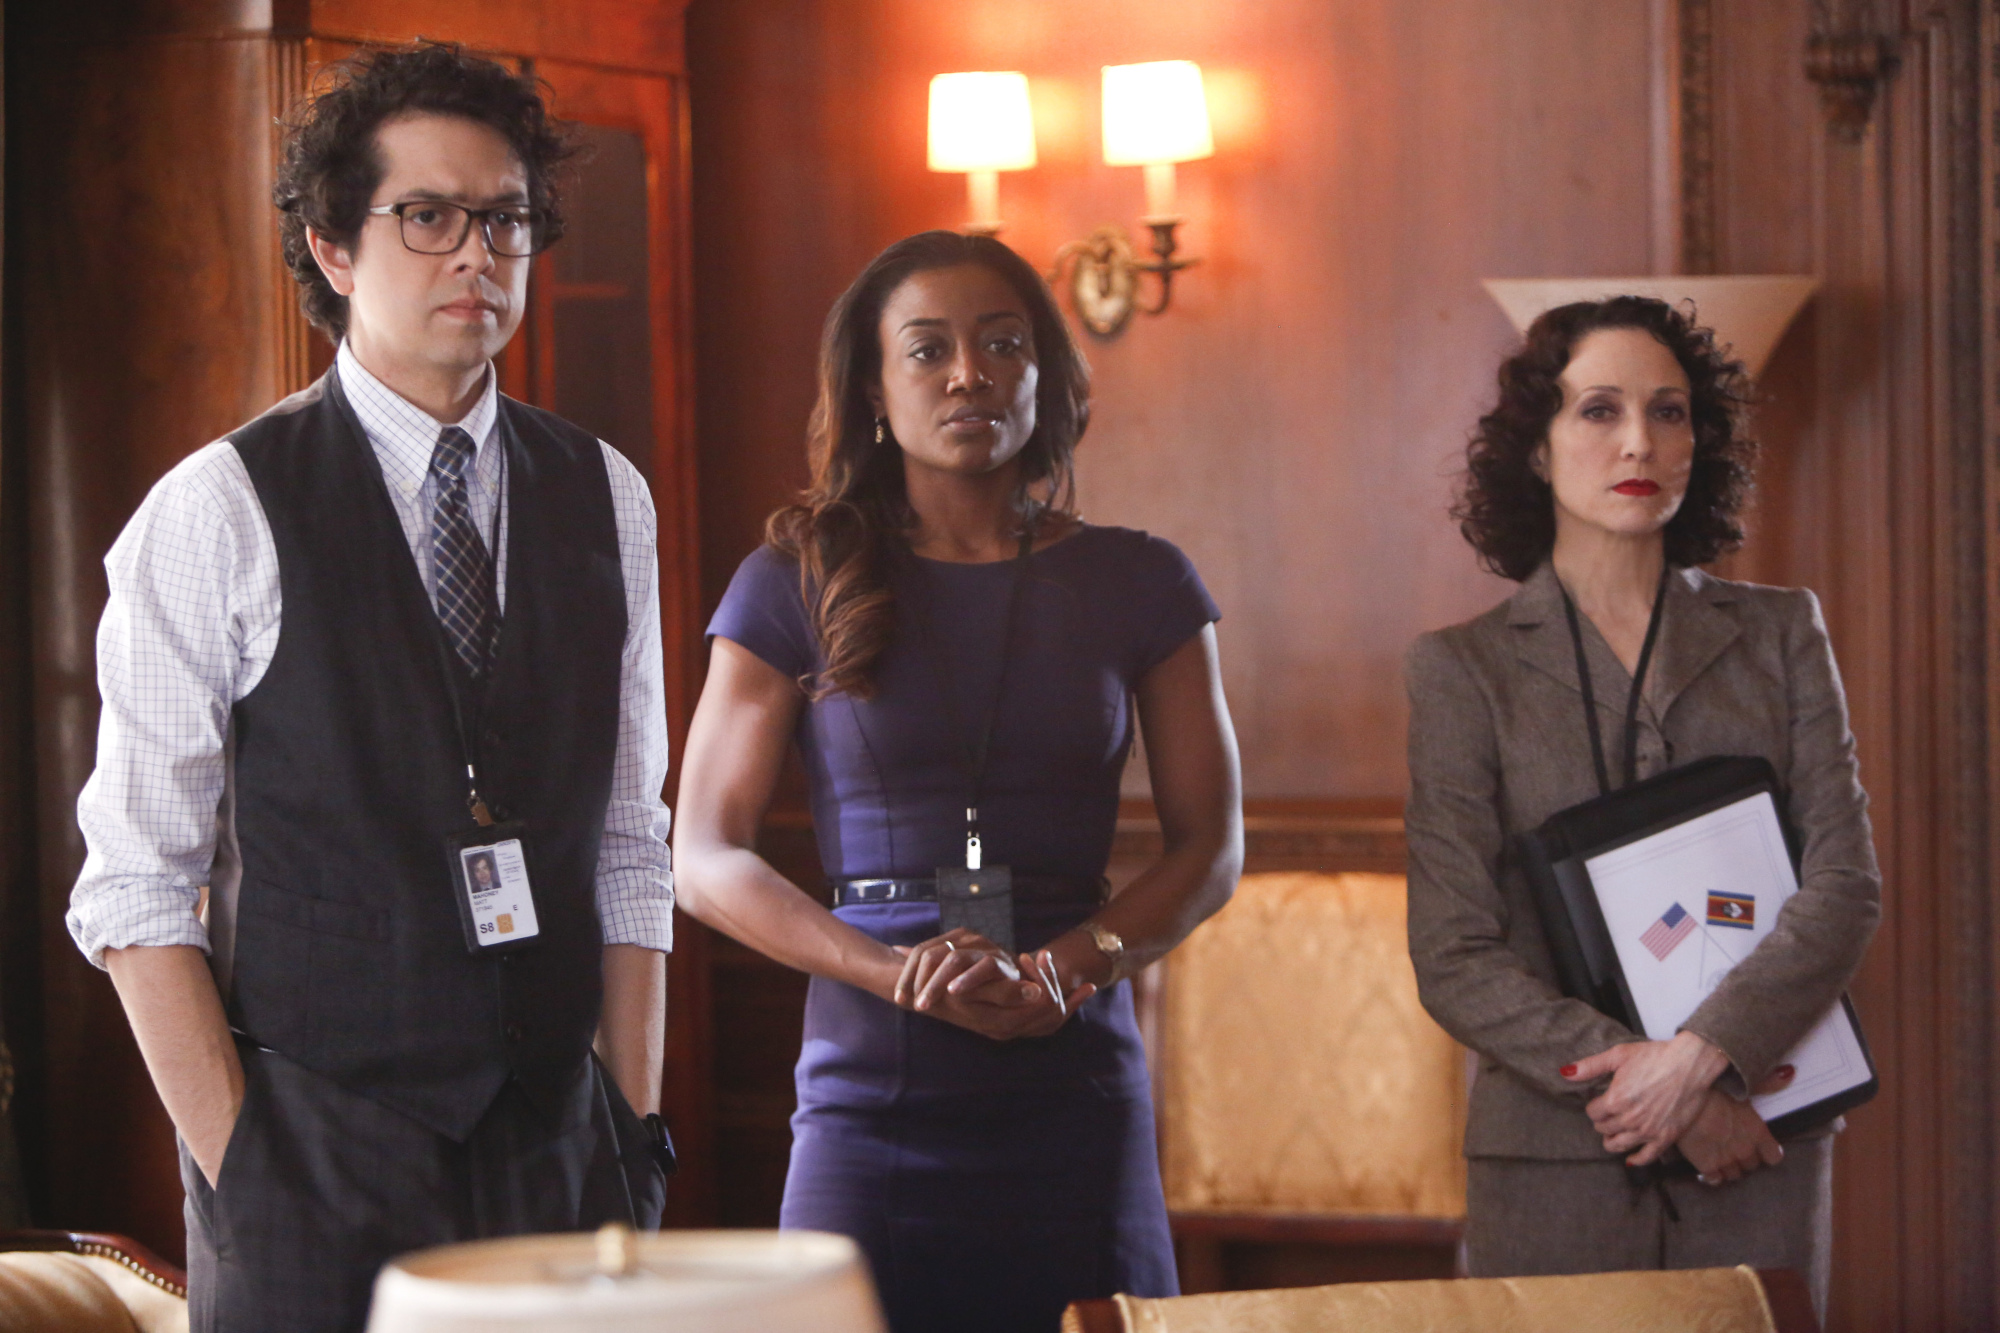 Critics rave over madam secretary the reviews are in for Why is bebe neuwirth leaving madam secretary